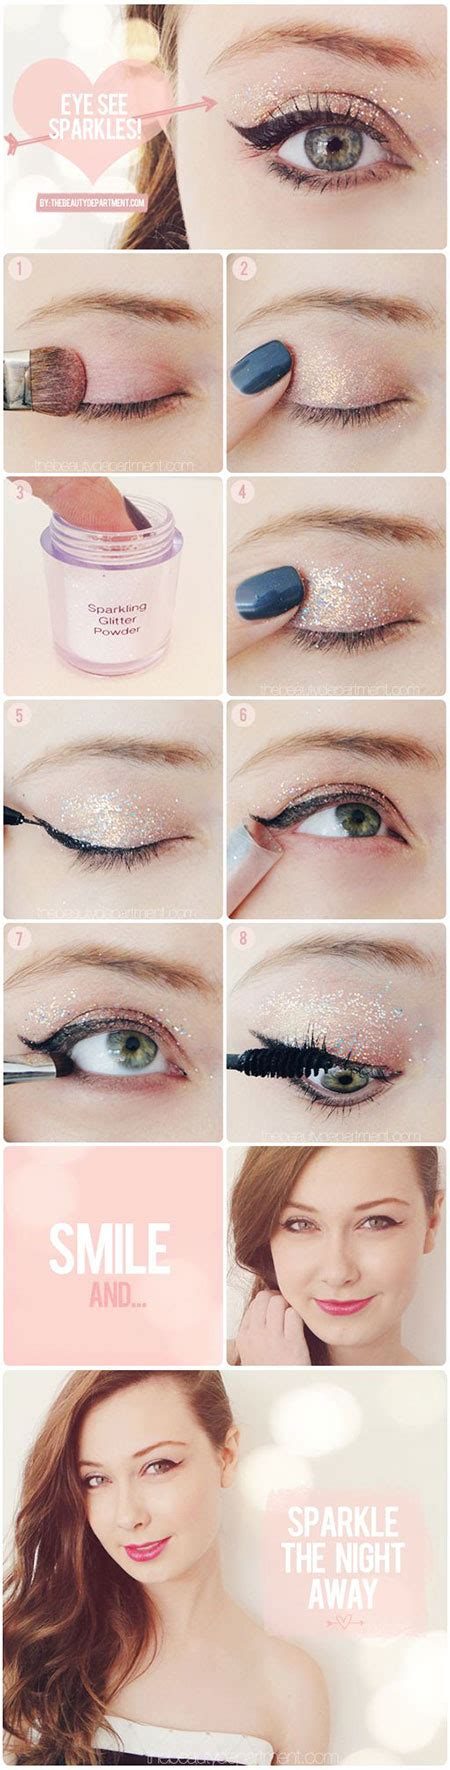 natural night makeup tutorial 12 easy step by step natural eye make up tutorials for